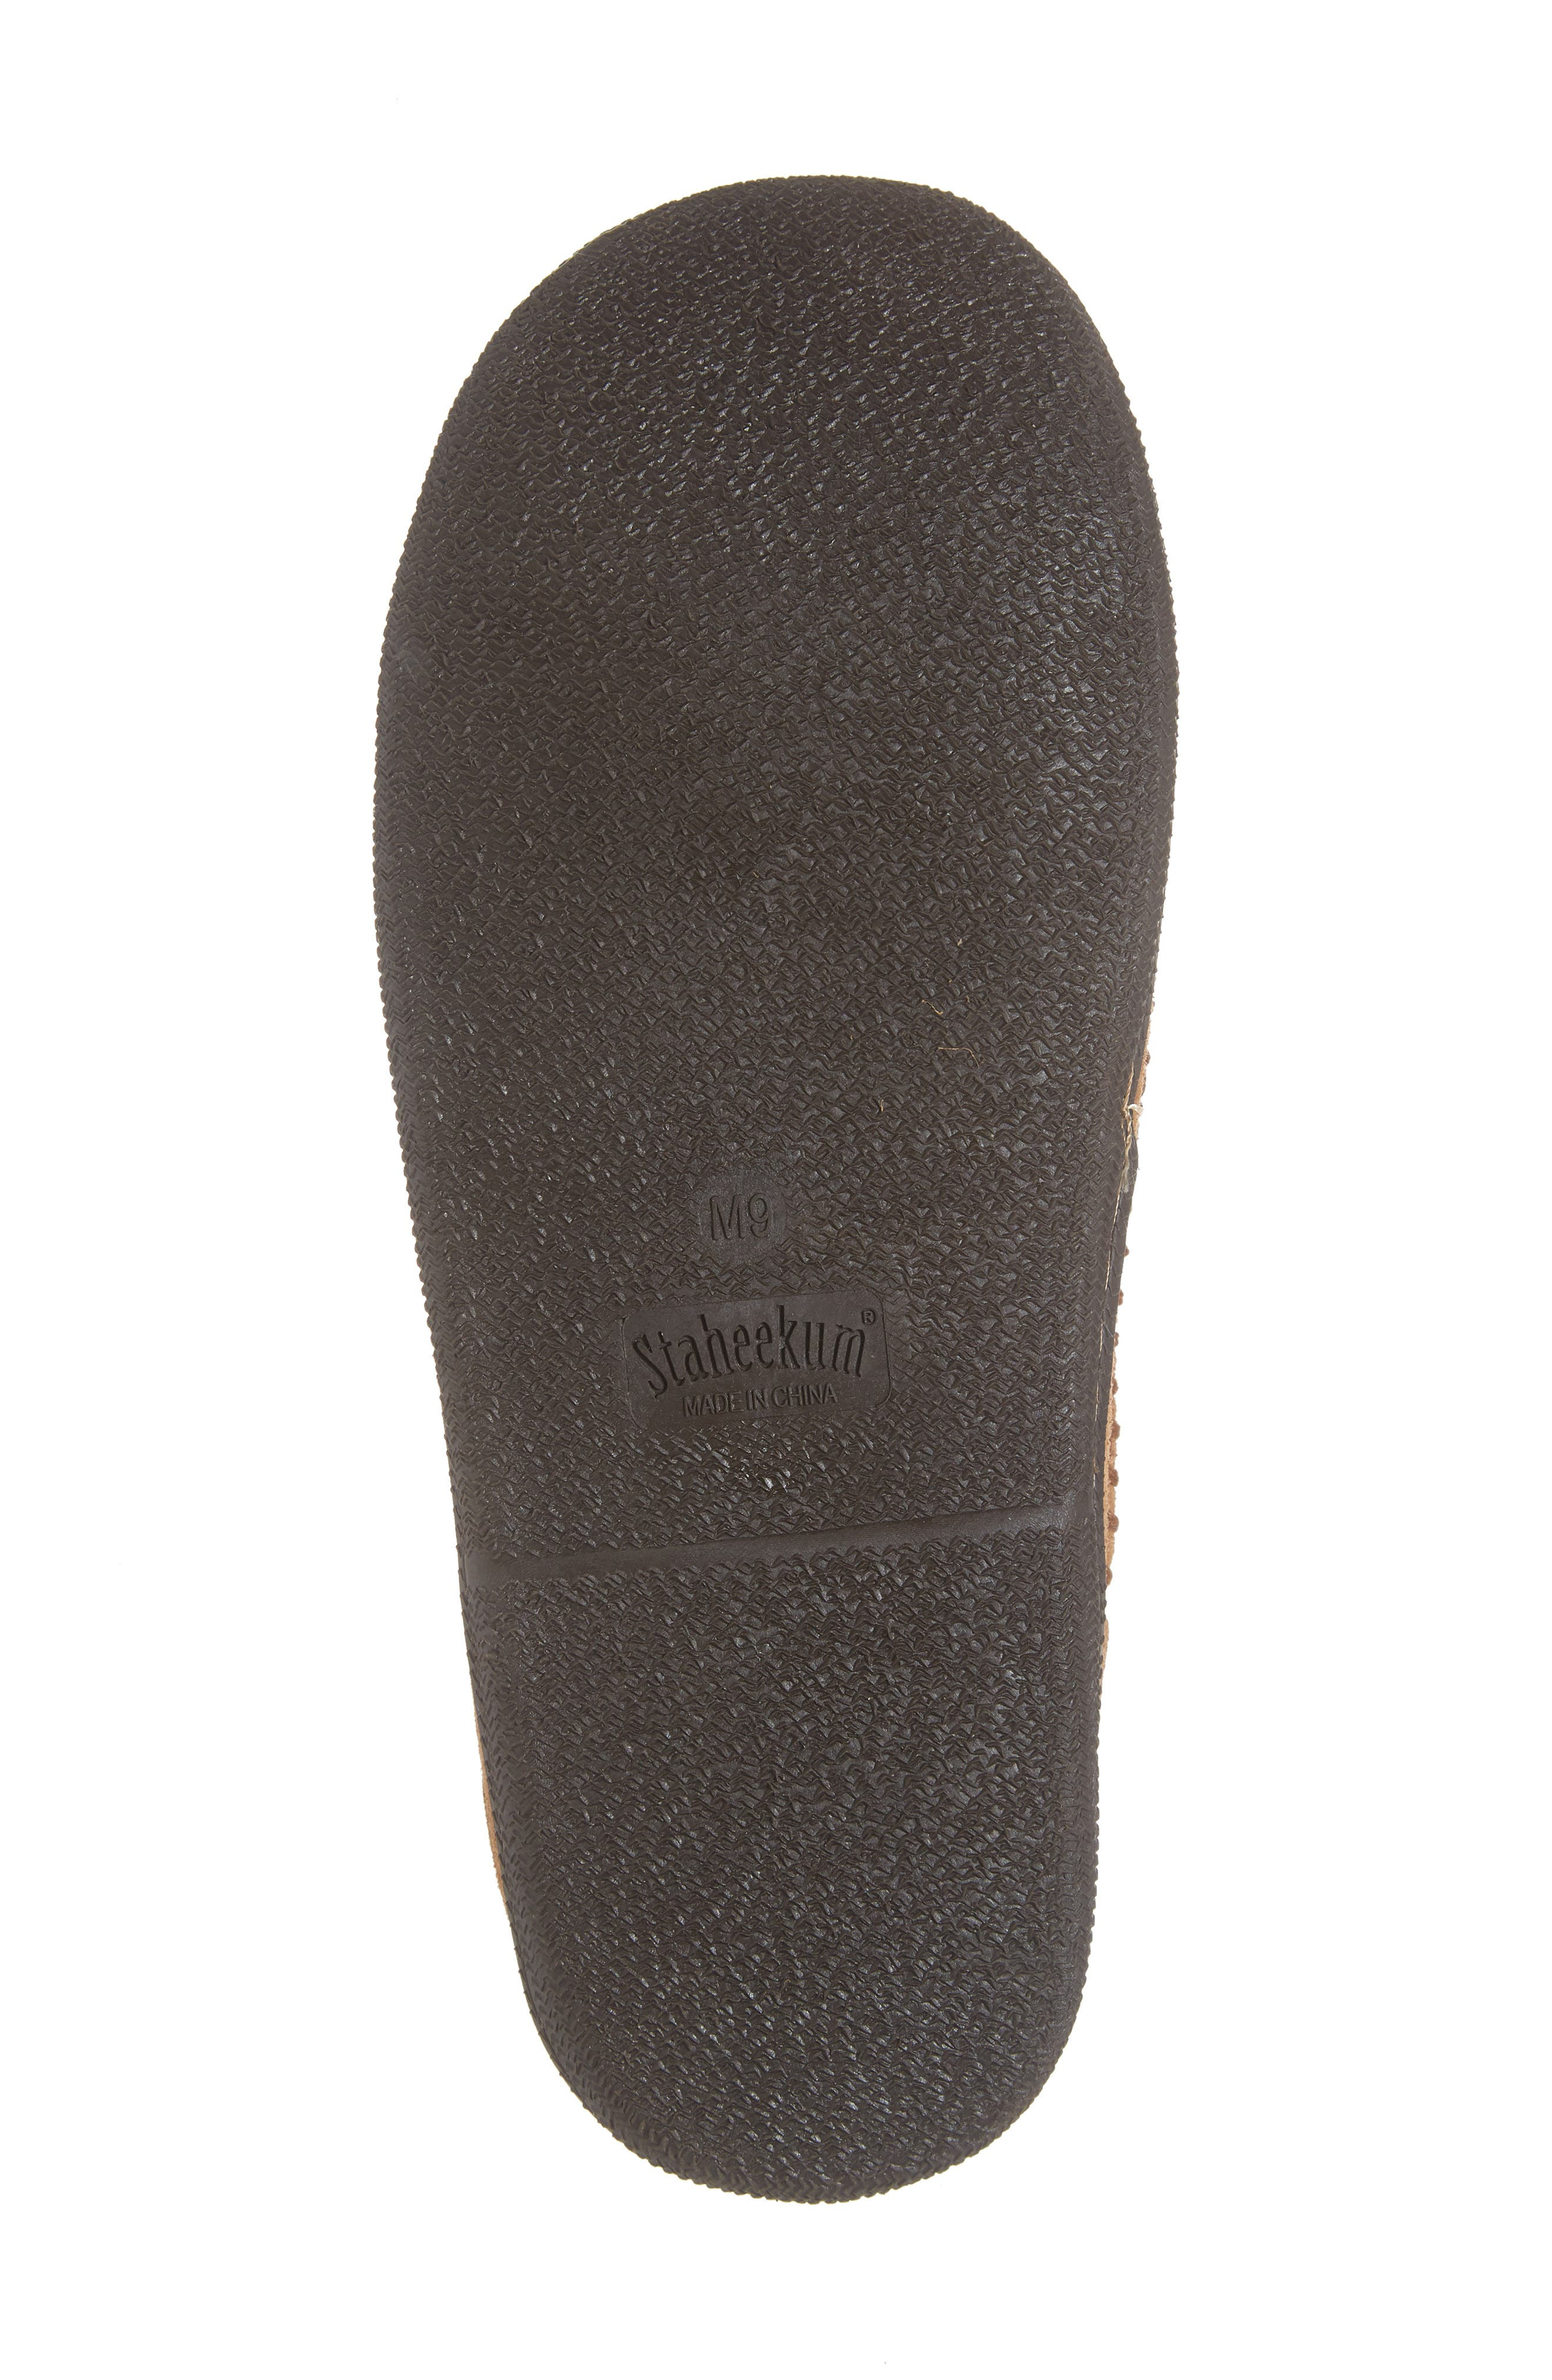 Cypress Flannel Lined Slipper,                             Alternate thumbnail 6, color,